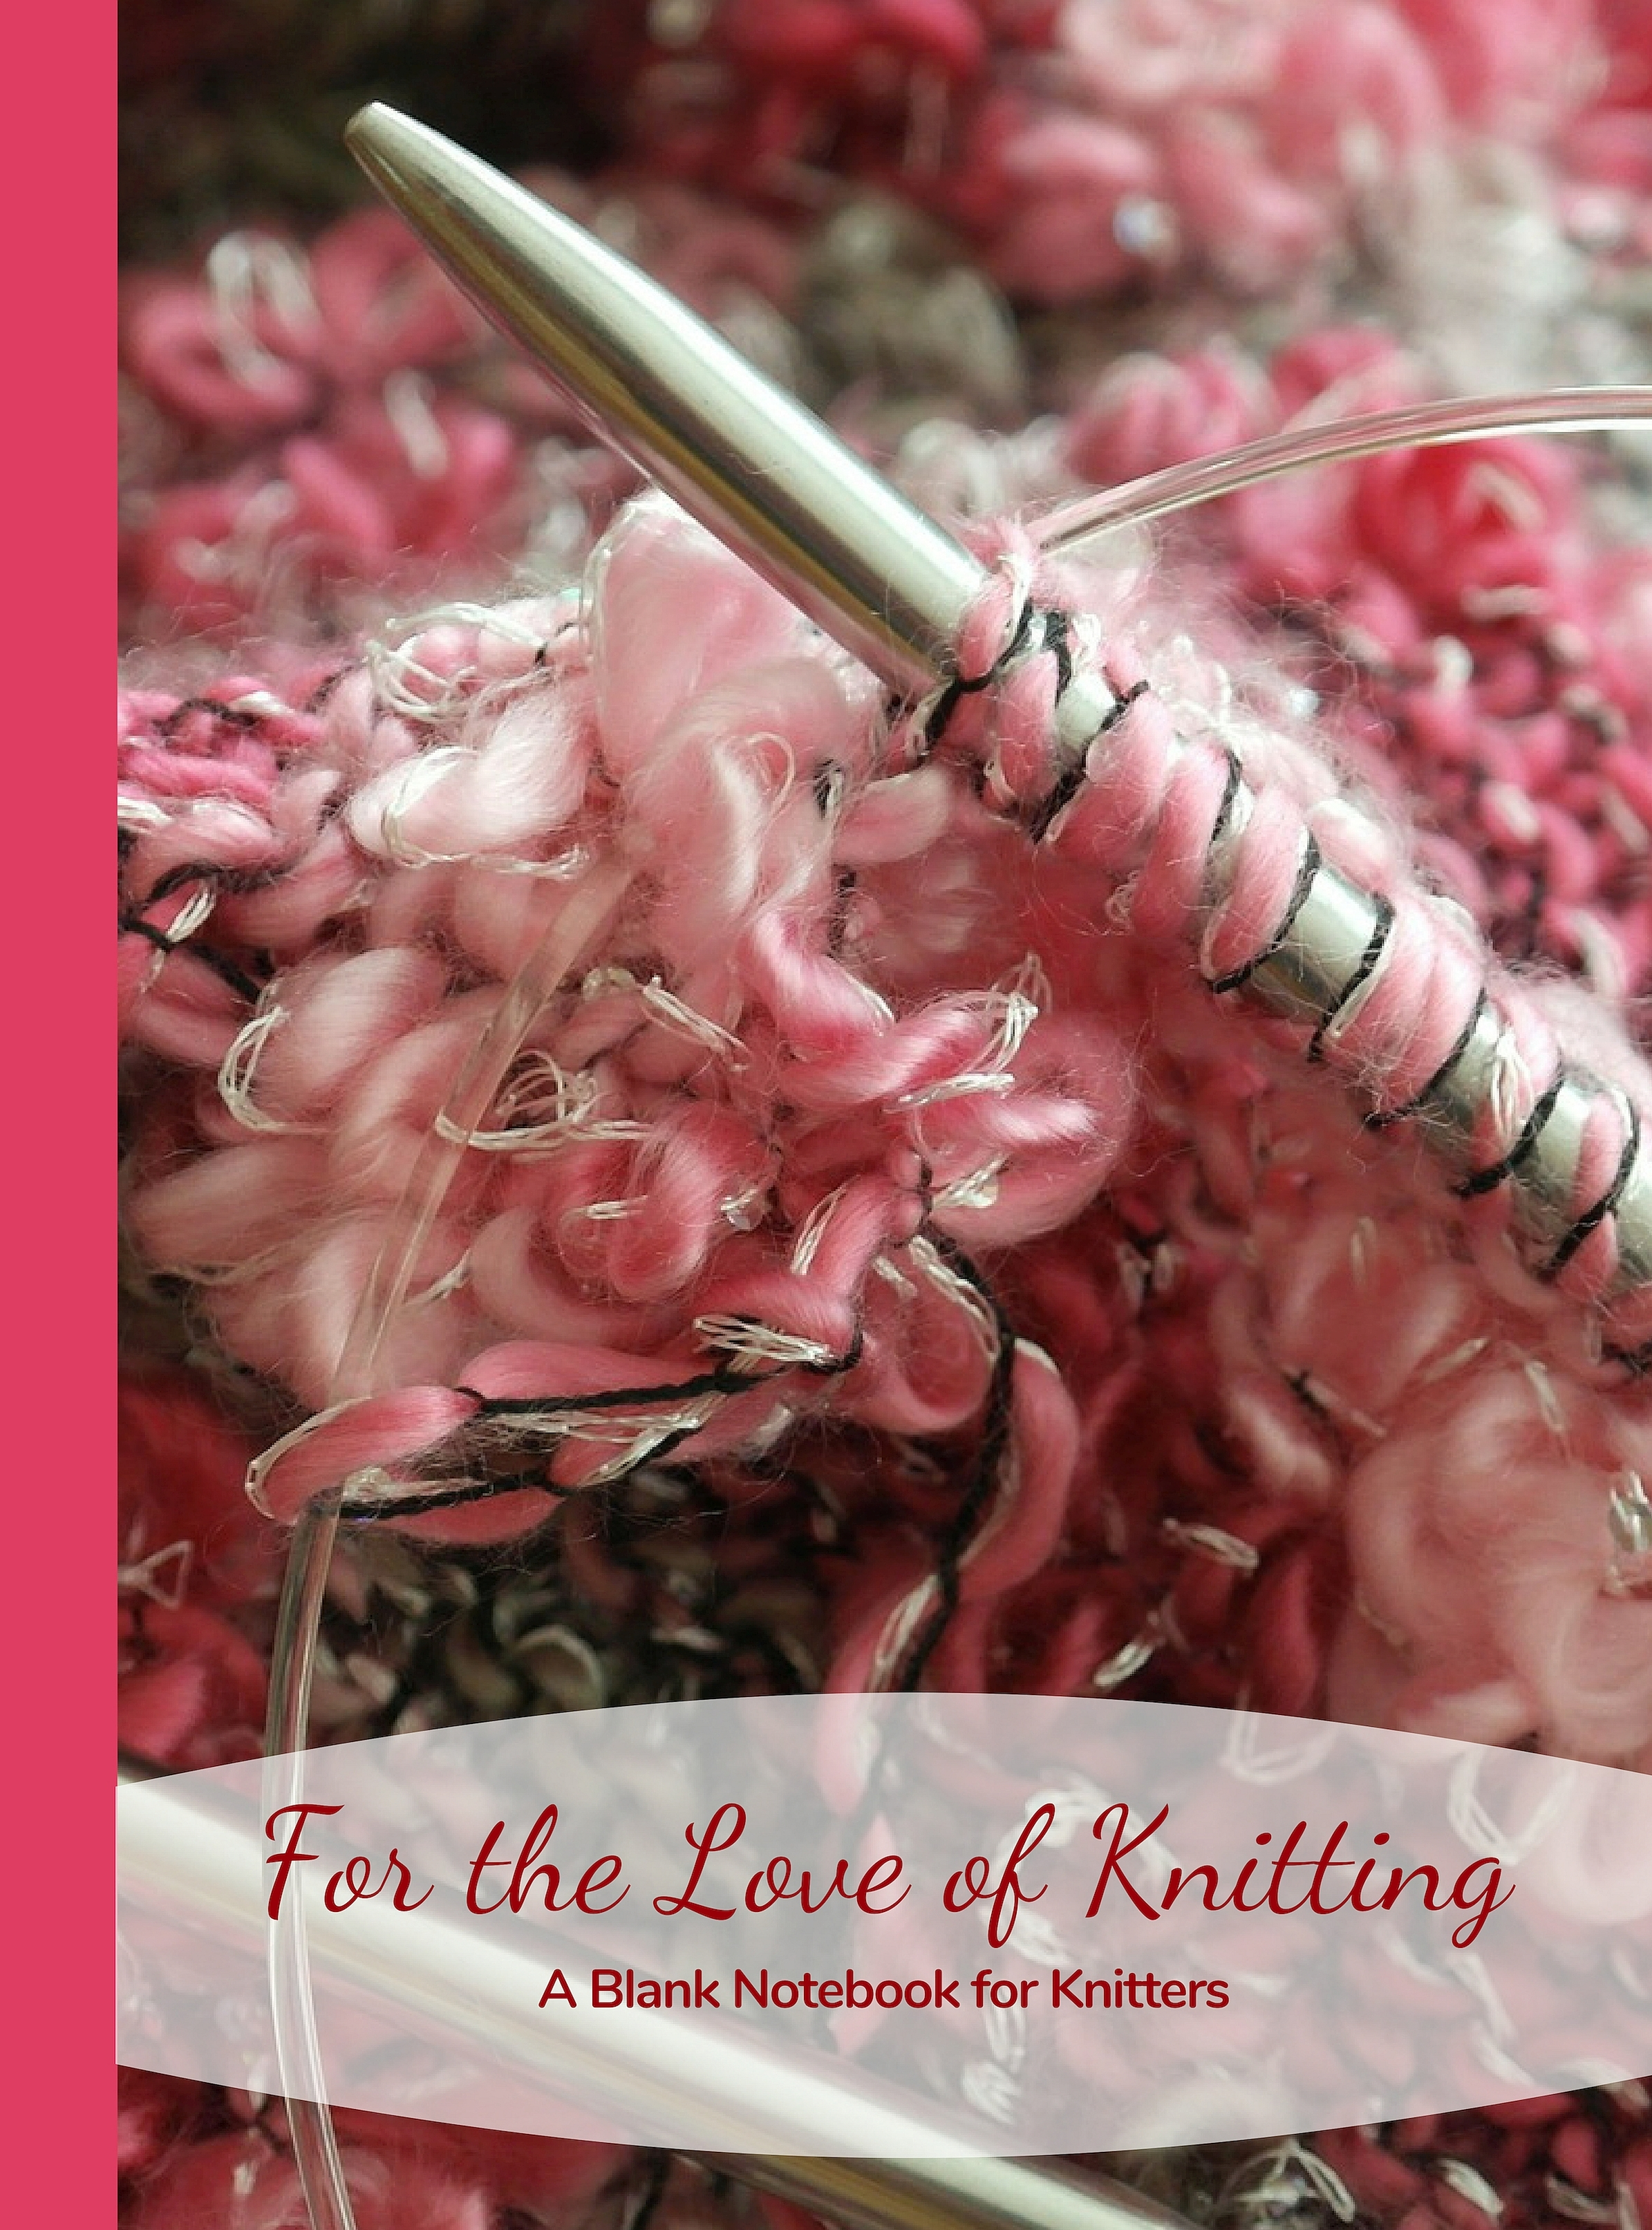 For the Love of Knitting, A Blank Notebook